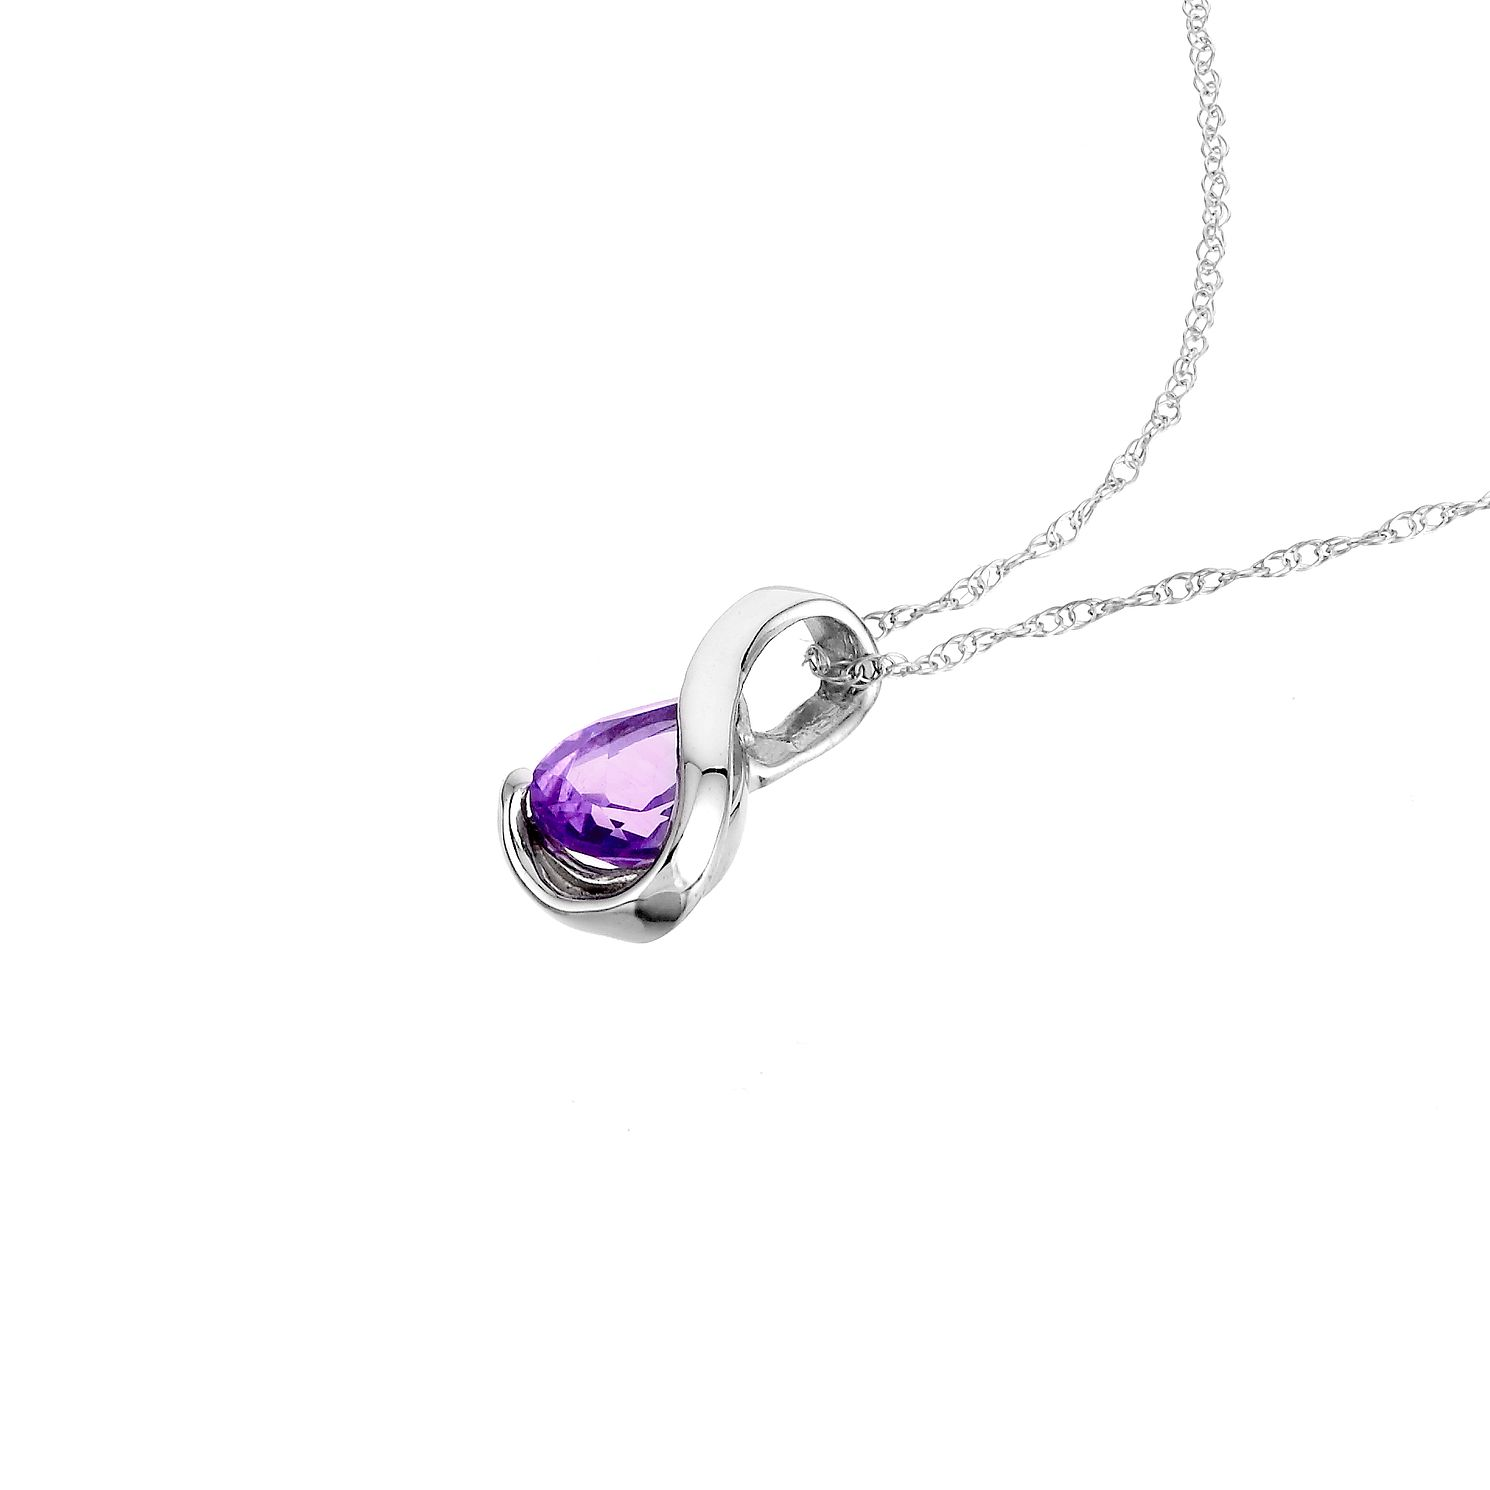 number gold jones pendant jewellery d ernest webstore white amethyst necklace product and